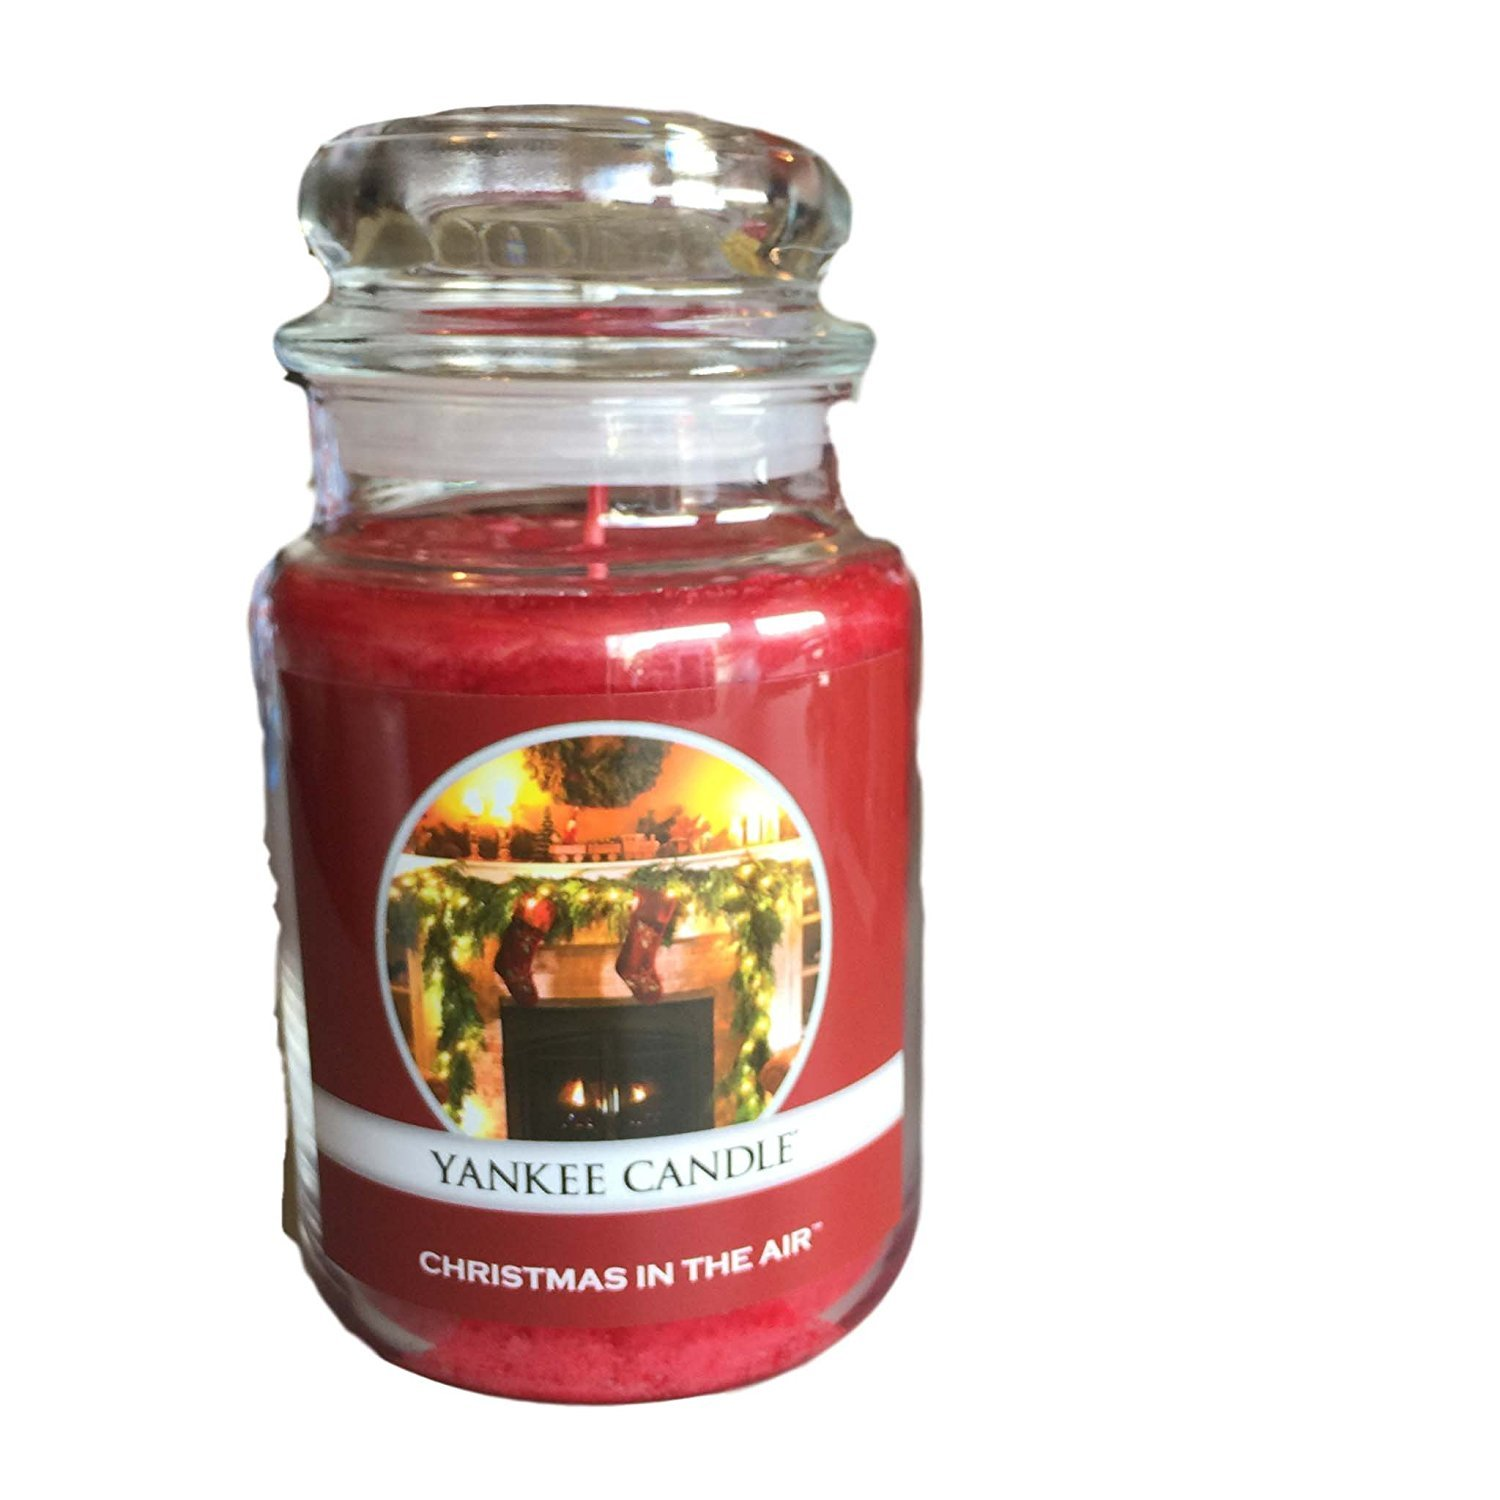 Yankee Candle Christmas in the Air Cinnamon Berry Swirl Large Jar Candle 22 oz